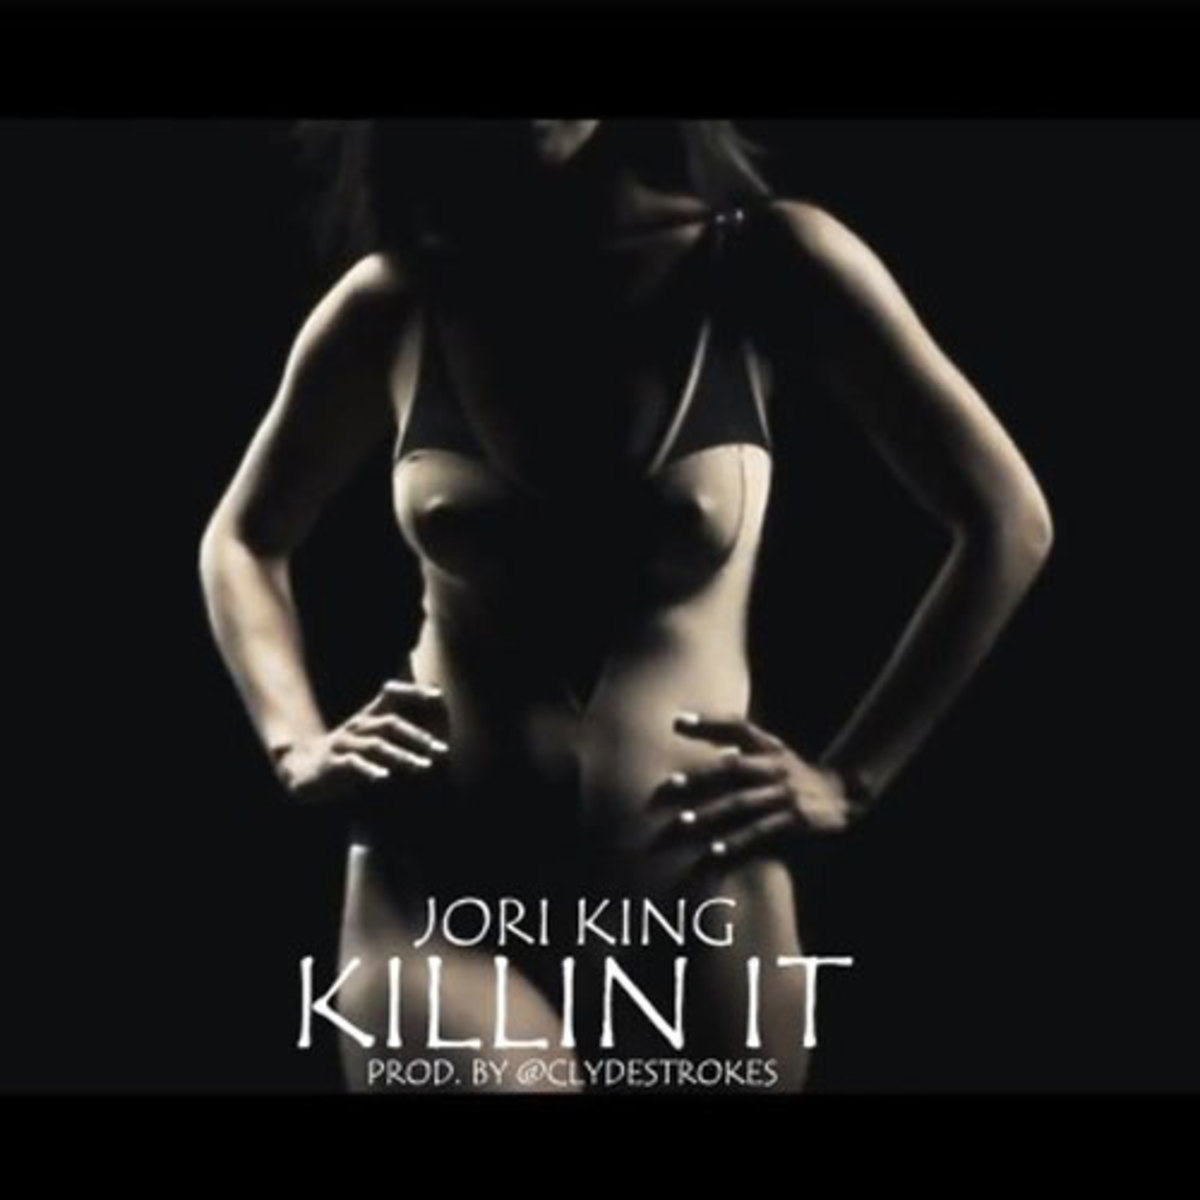 joriking-killinit.jpg